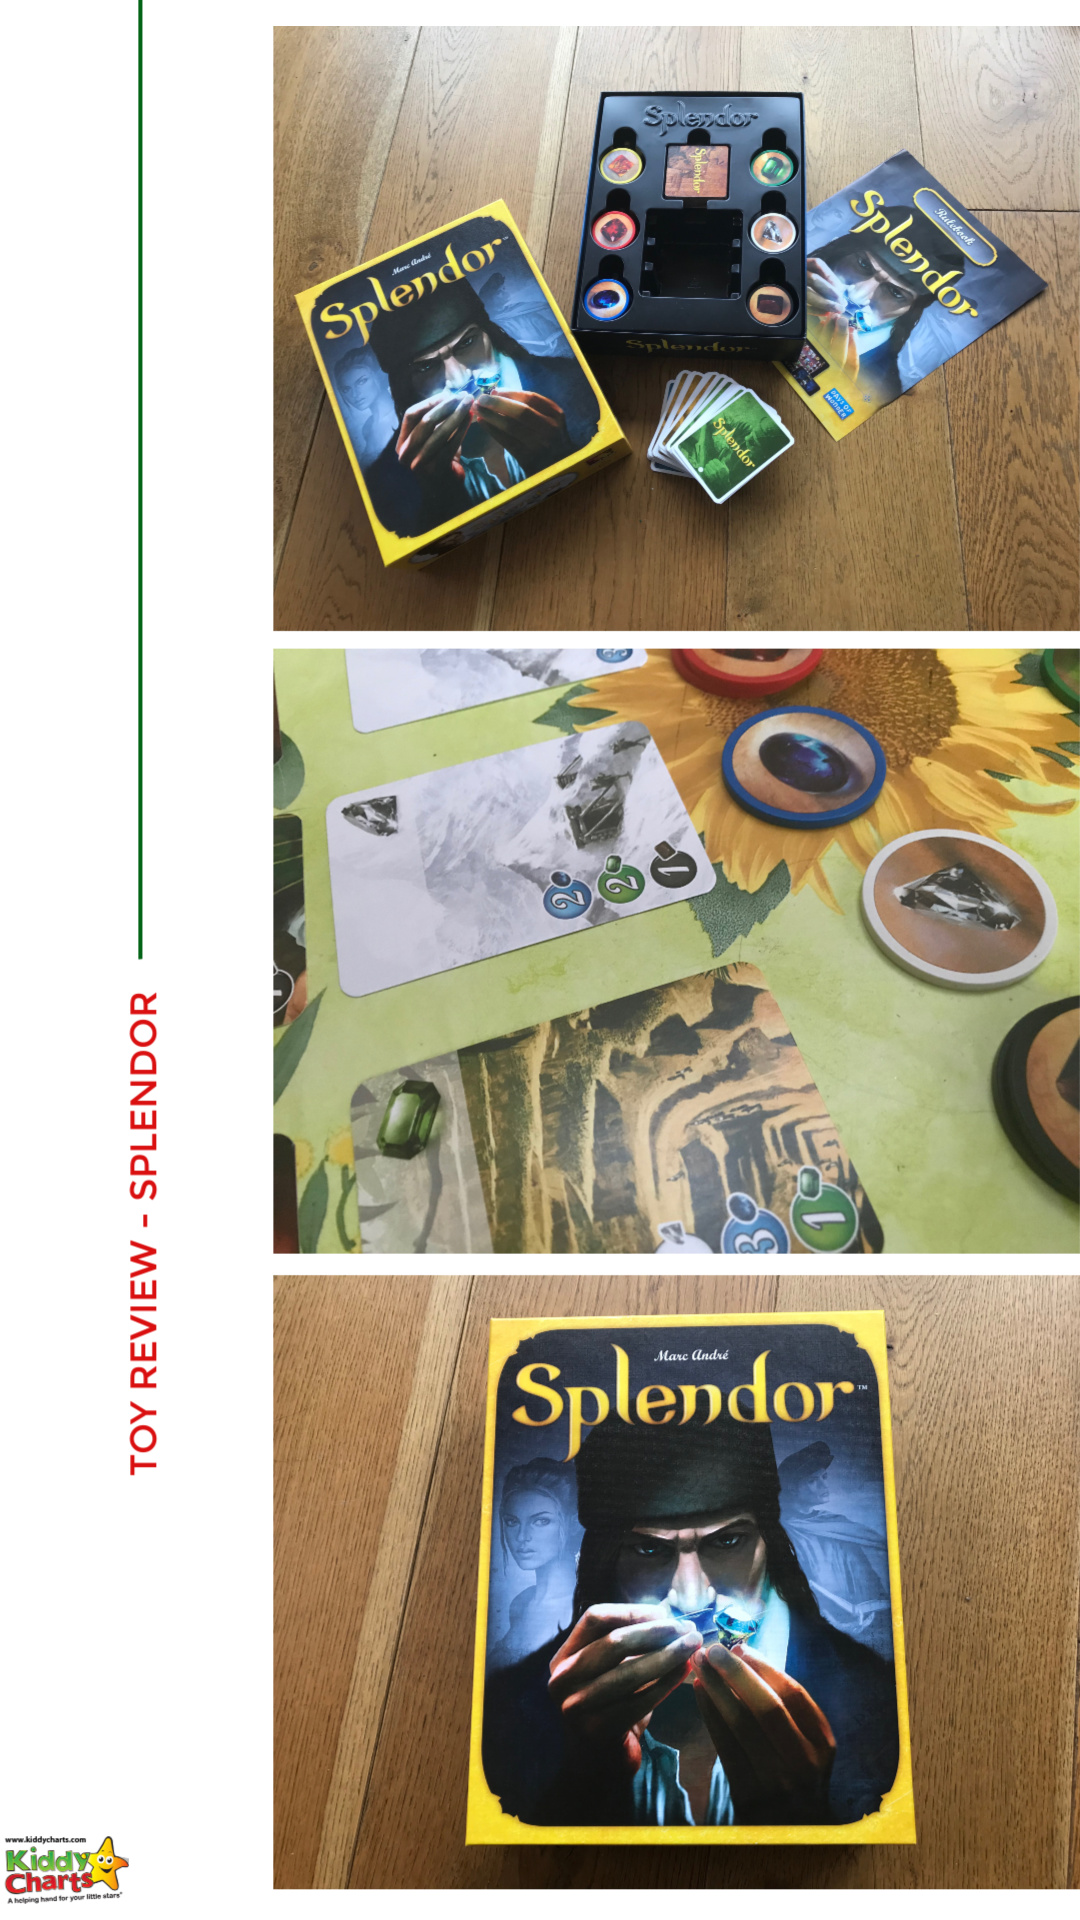 We are reviewing another great board game on the blog - such an original idea and the kids are loving it! #toy #boardgames #kids #gifts